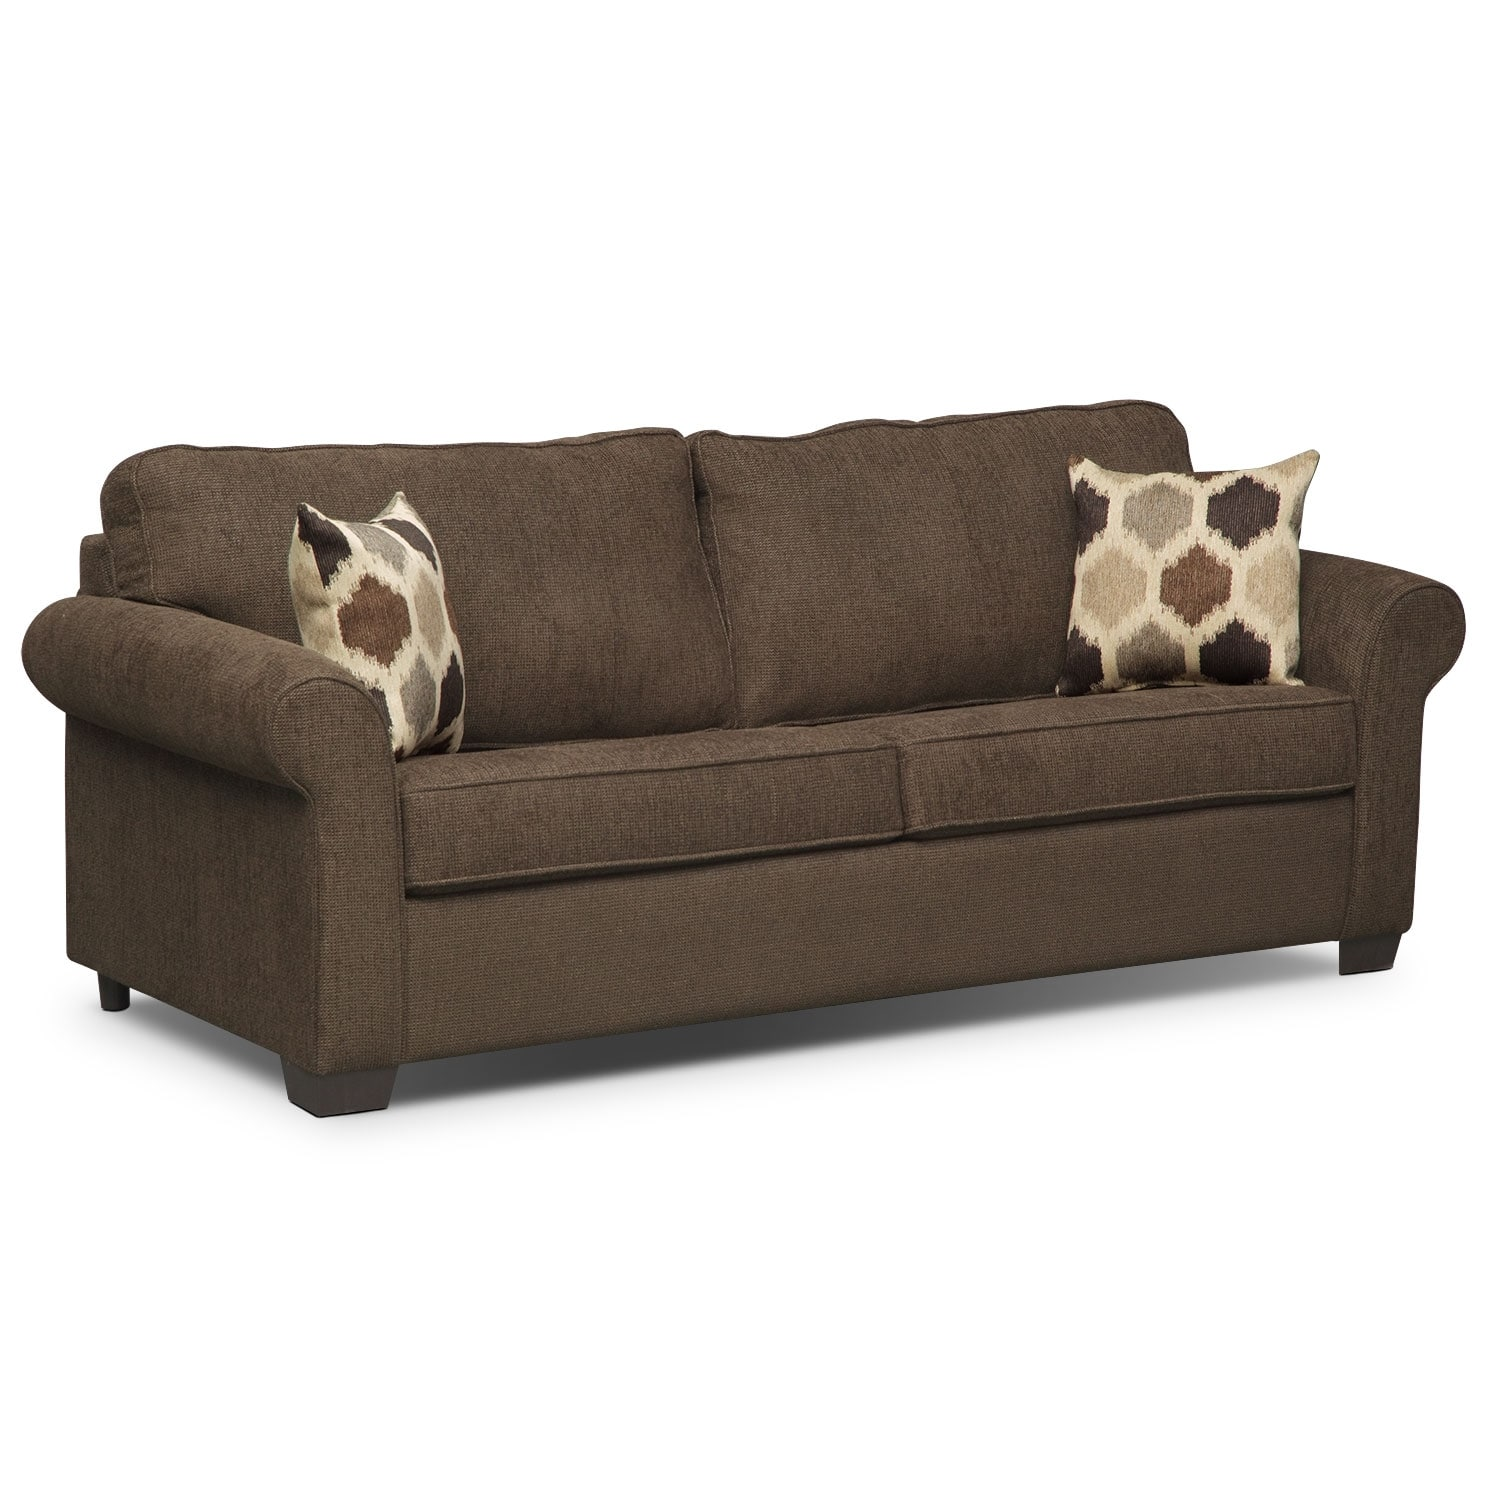 Fletcher II Queen Innerspring Sleeper Sofa